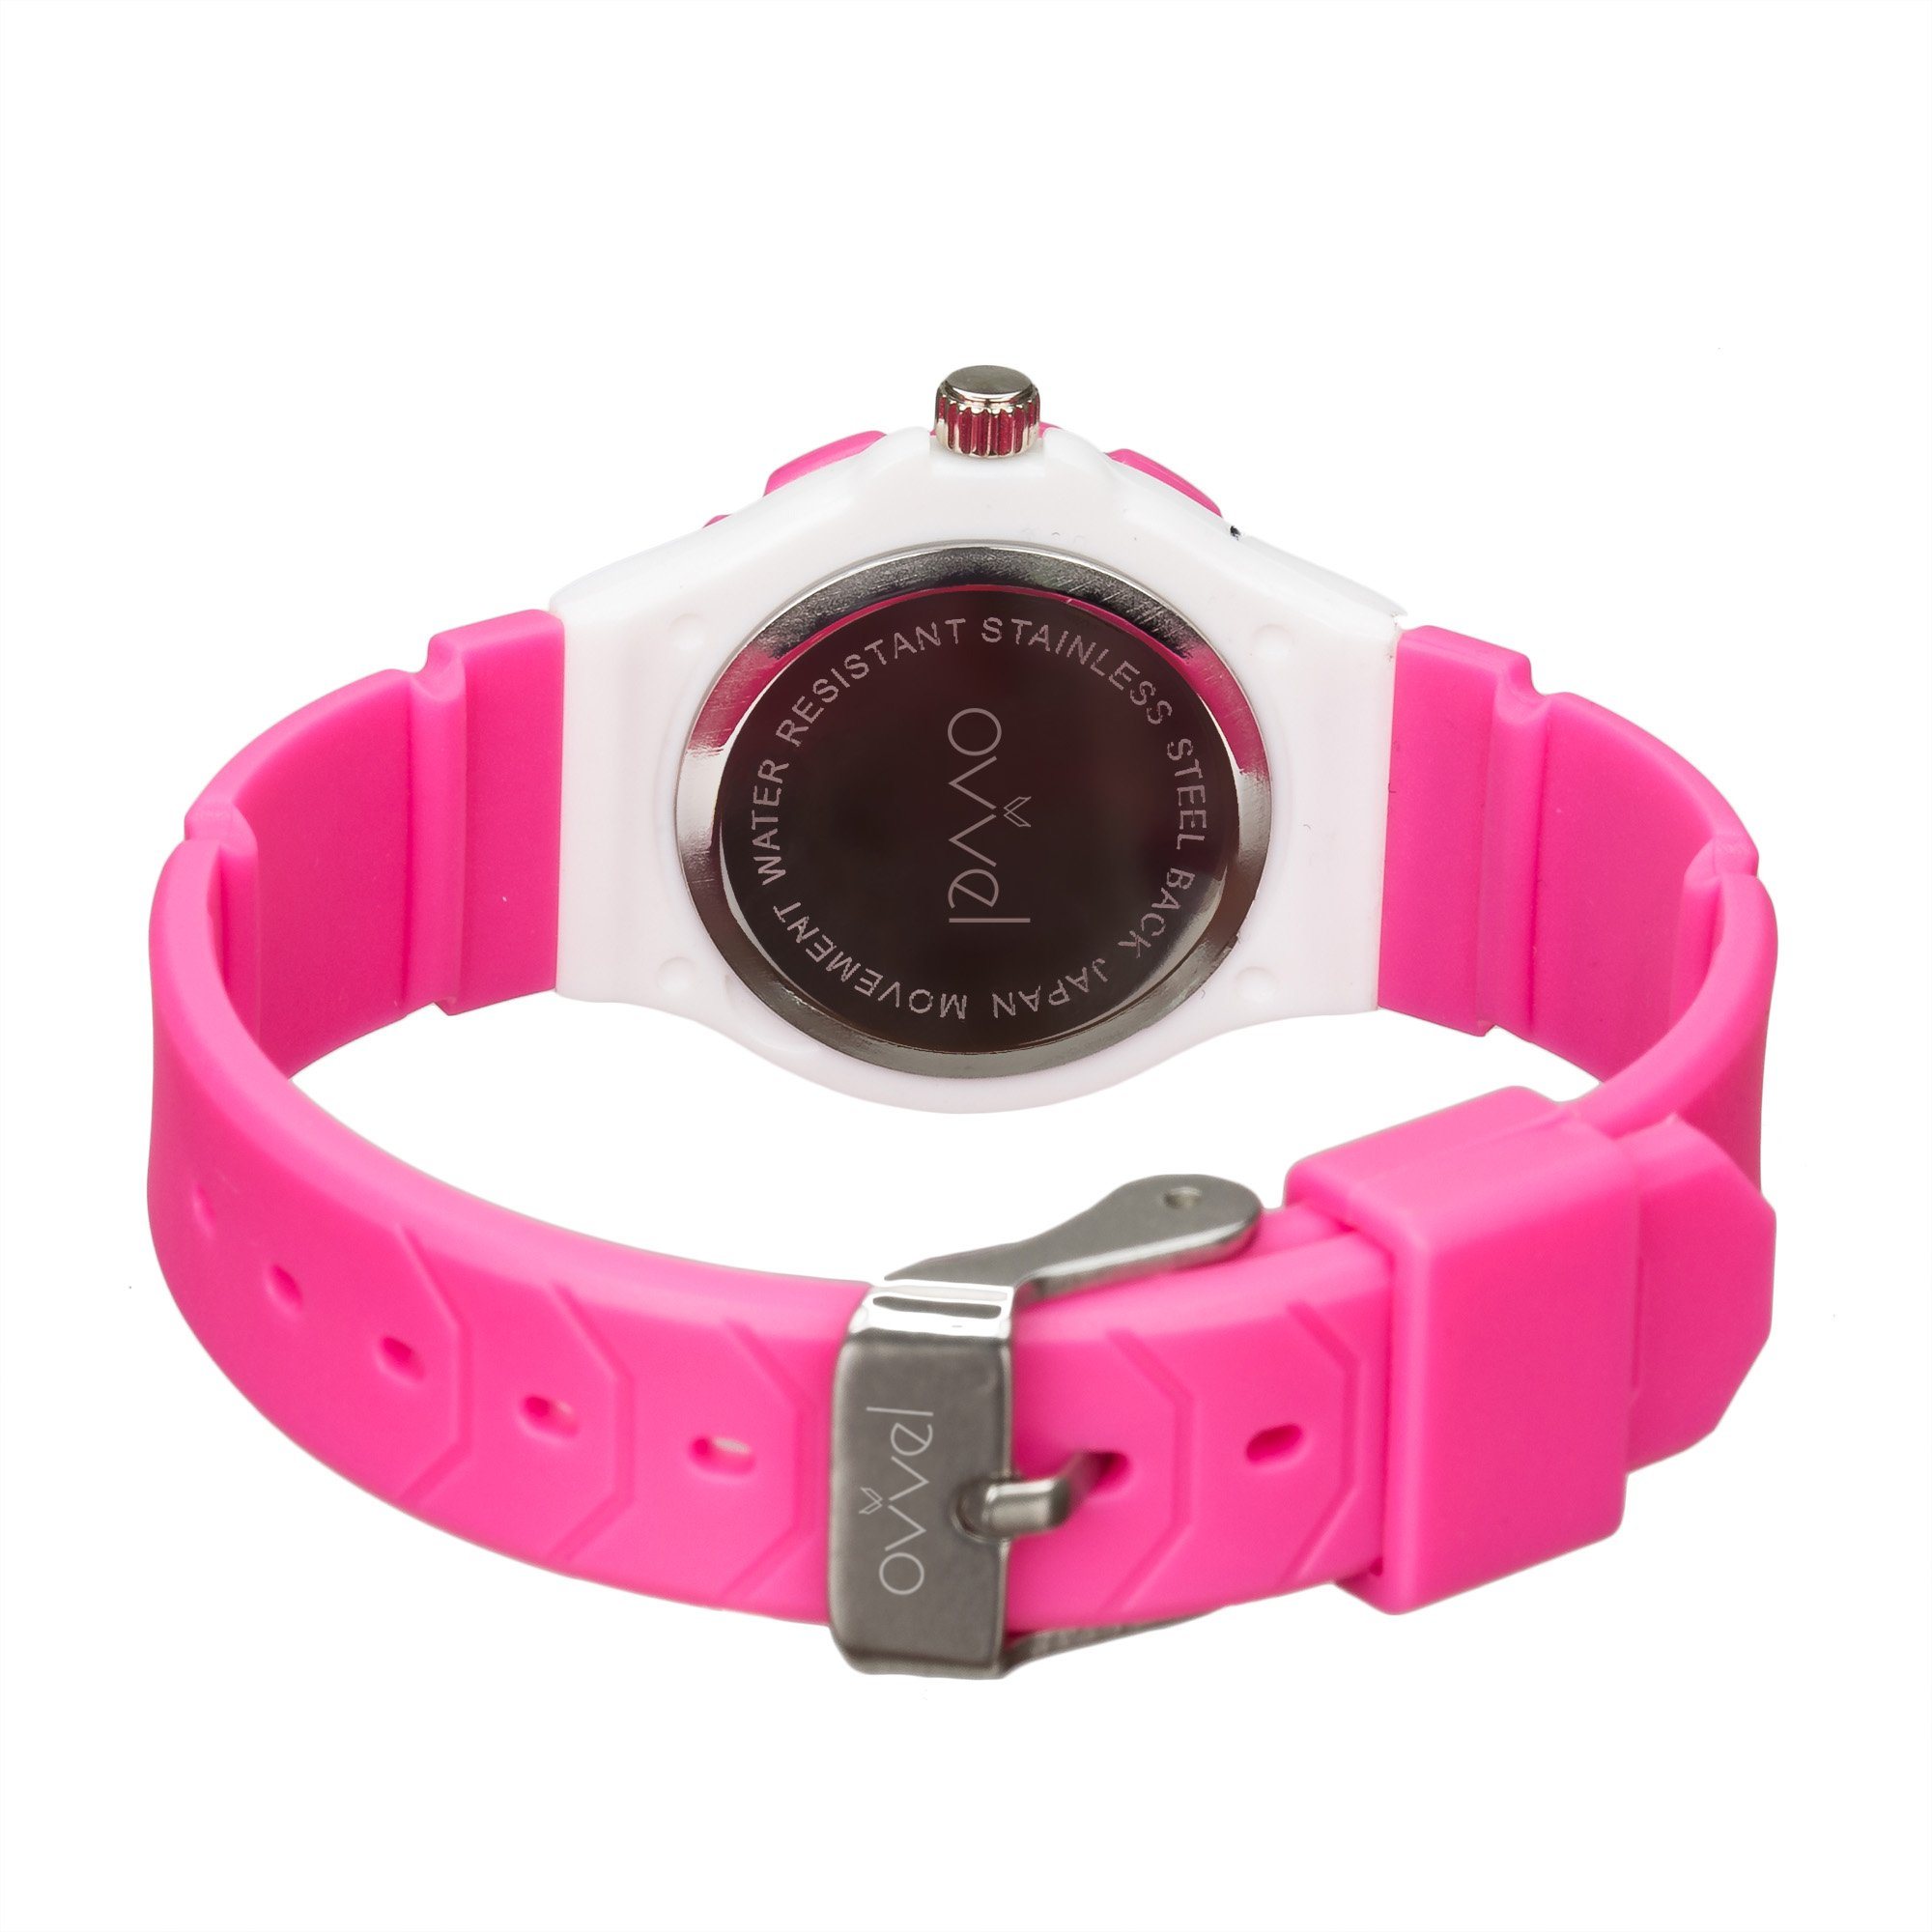 Ovvel Kids Watches, Wrist Watch for Little Girls, Beautiful & Adorable Time Teacher Watch, Innovative Easy–to–Read Design with Japanese Movement & Sony Battery, Gift for Little Girls - Pink by Ovvel (Image #2)